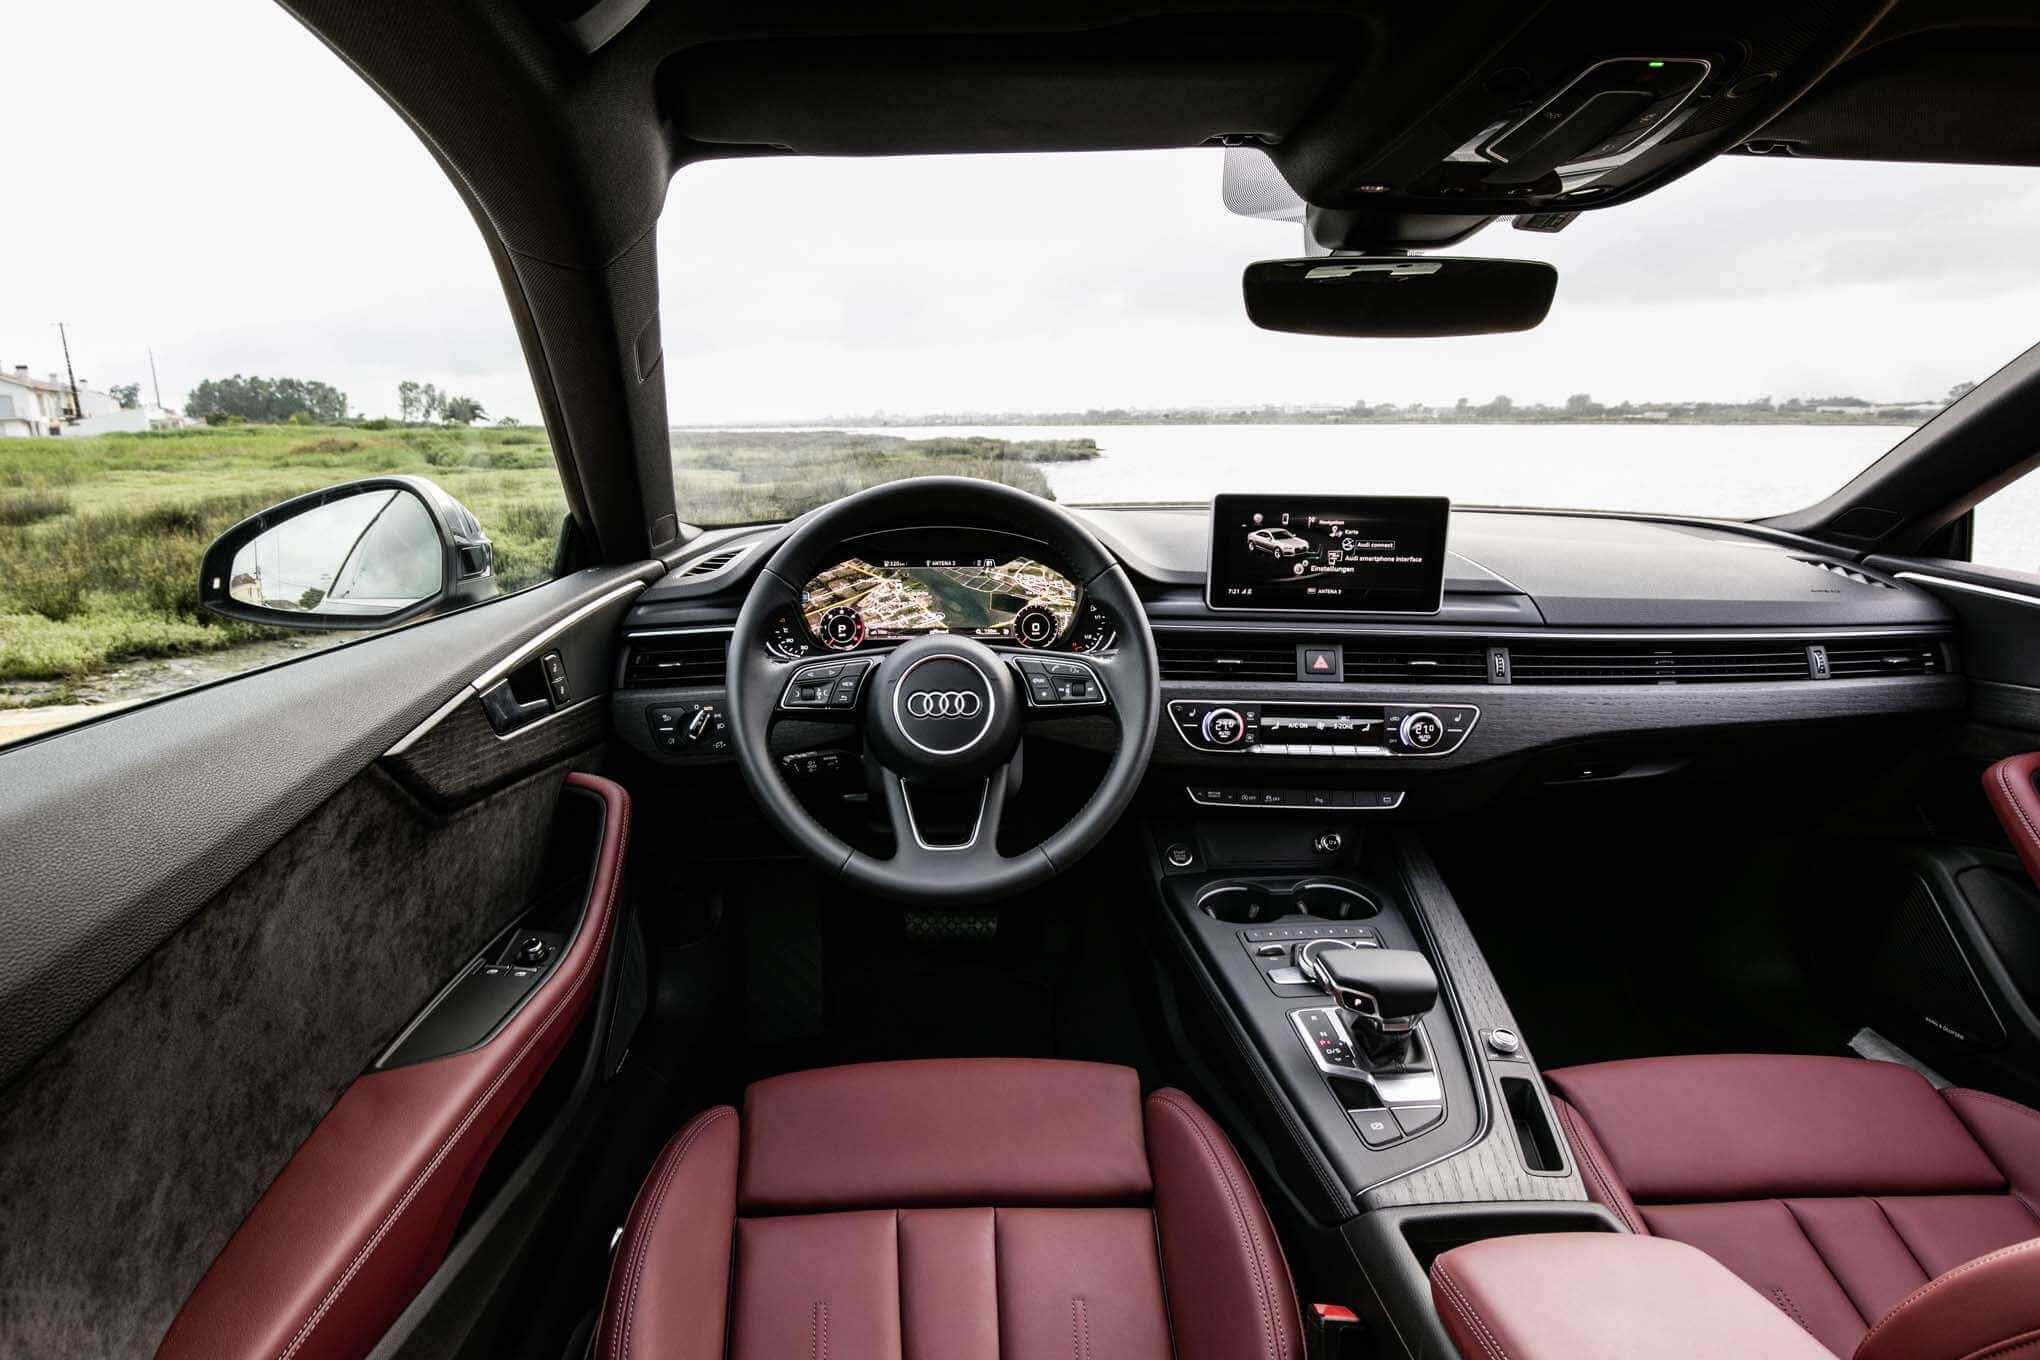 42 Concept of New Audi A6 2019 Interior Spy Shoot Price and Review for New Audi A6 2019 Interior Spy Shoot